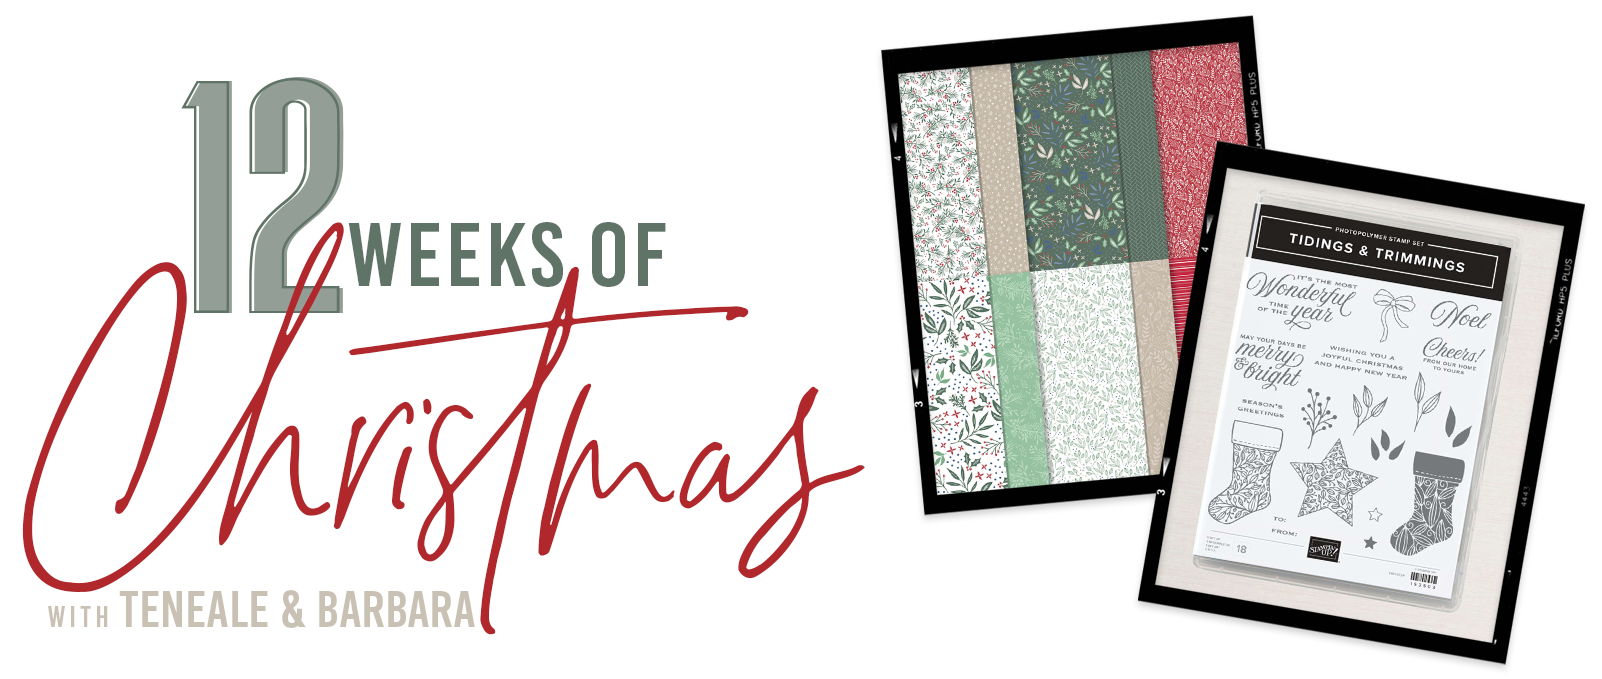 12 Weeks of Christmas with Teneale and Barbara